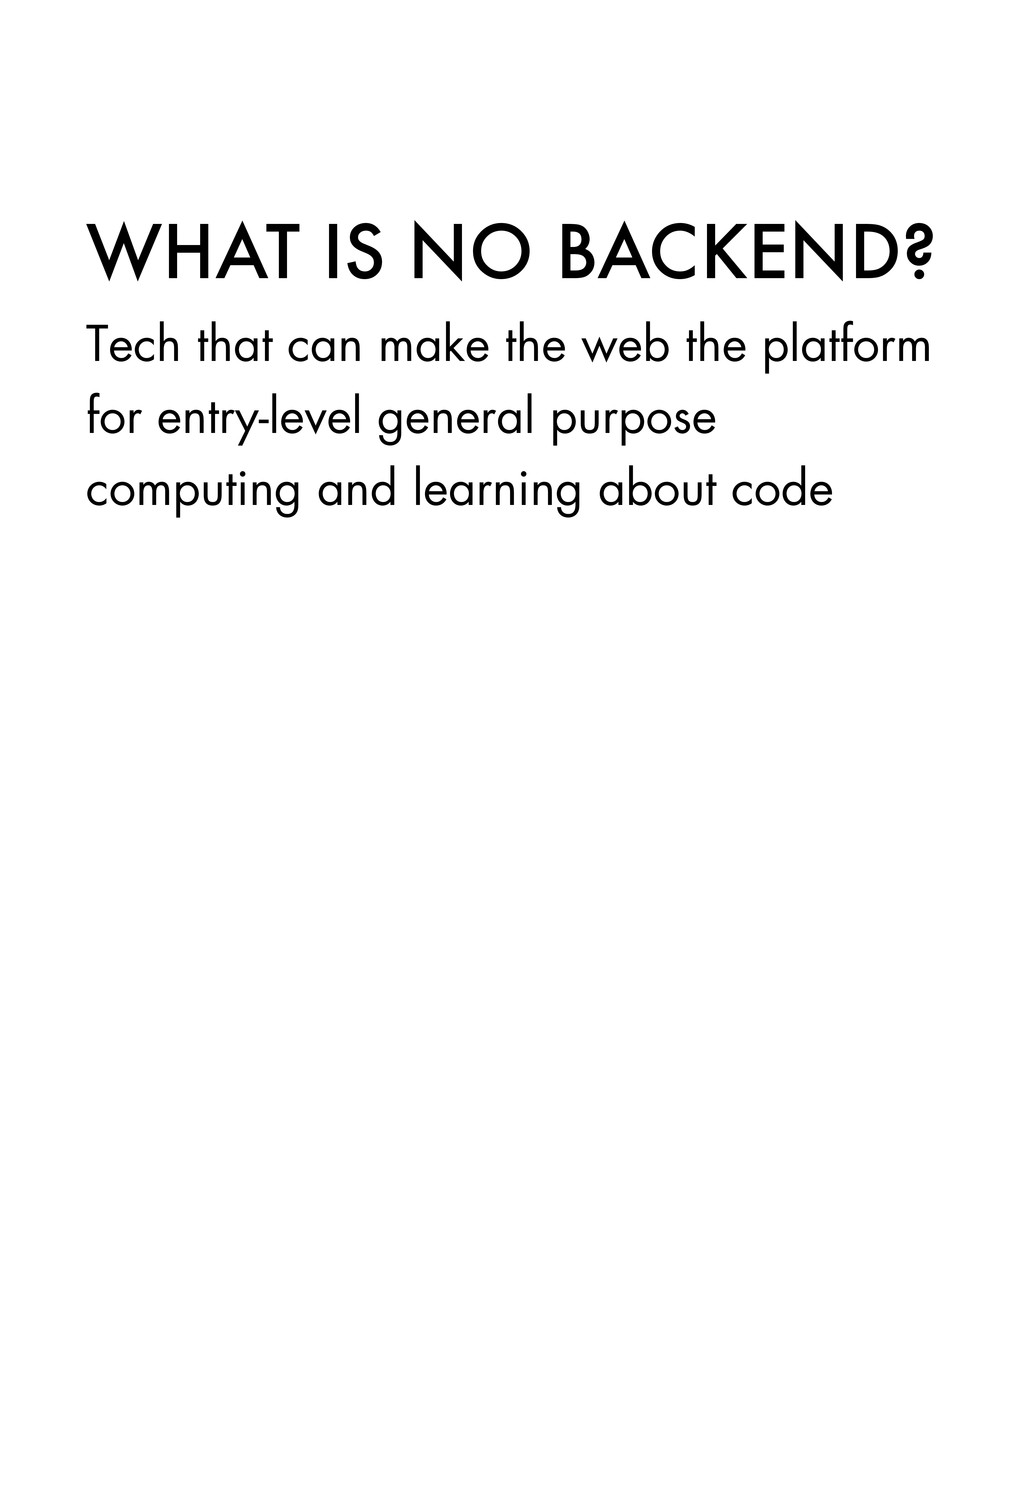 WHAT IS NO BACKEND? Tech that can make the web ...